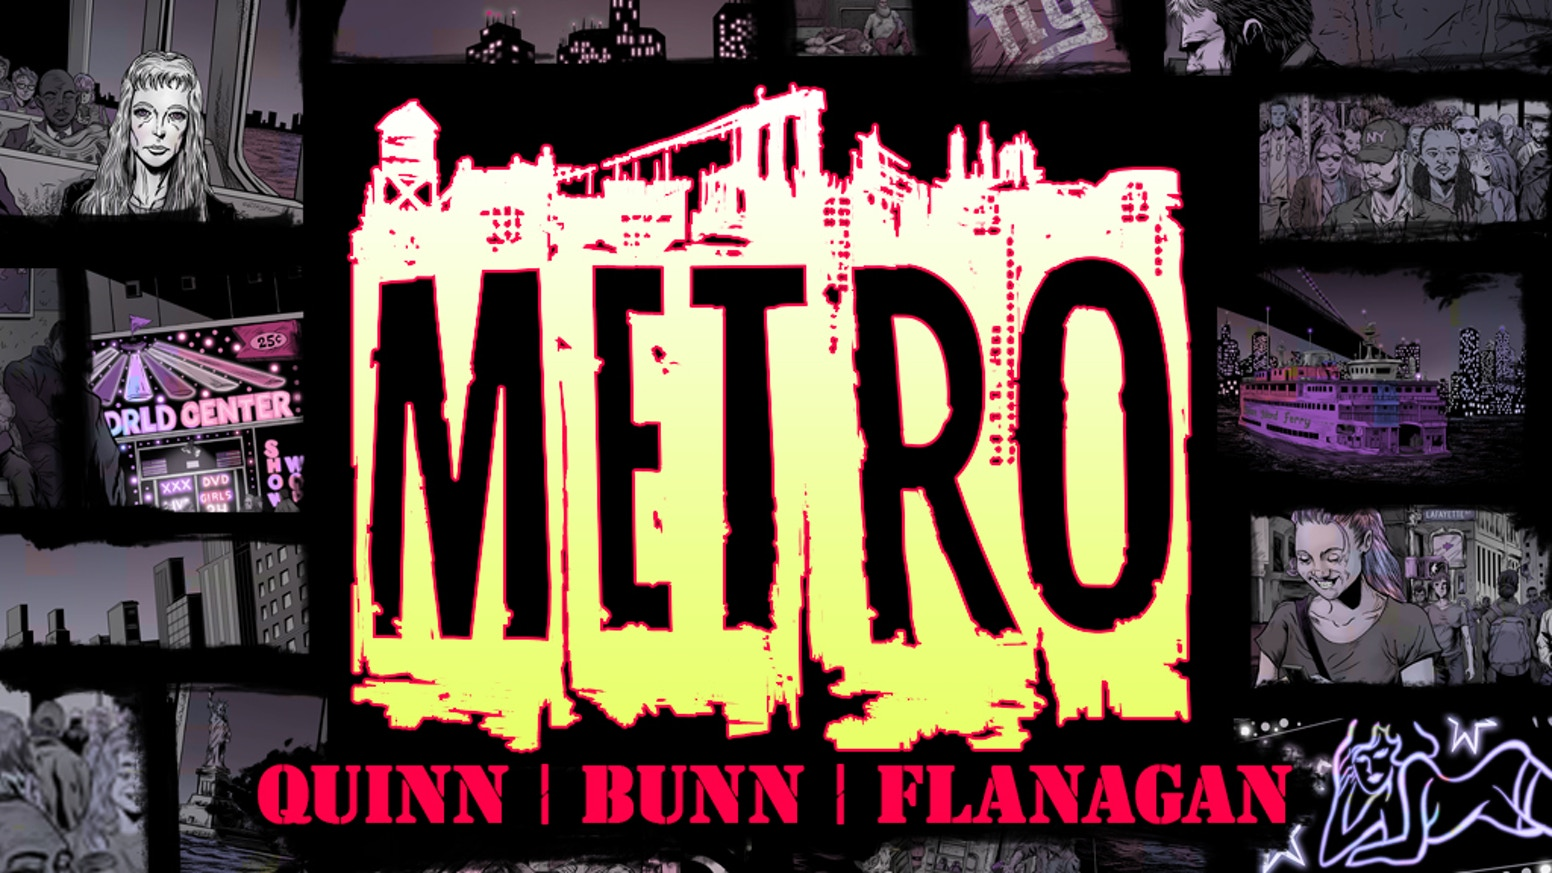 METRO is a 122-page full-color graphic novel by Brian Quinn, Cullen Bunn, and Walt Flanagan.